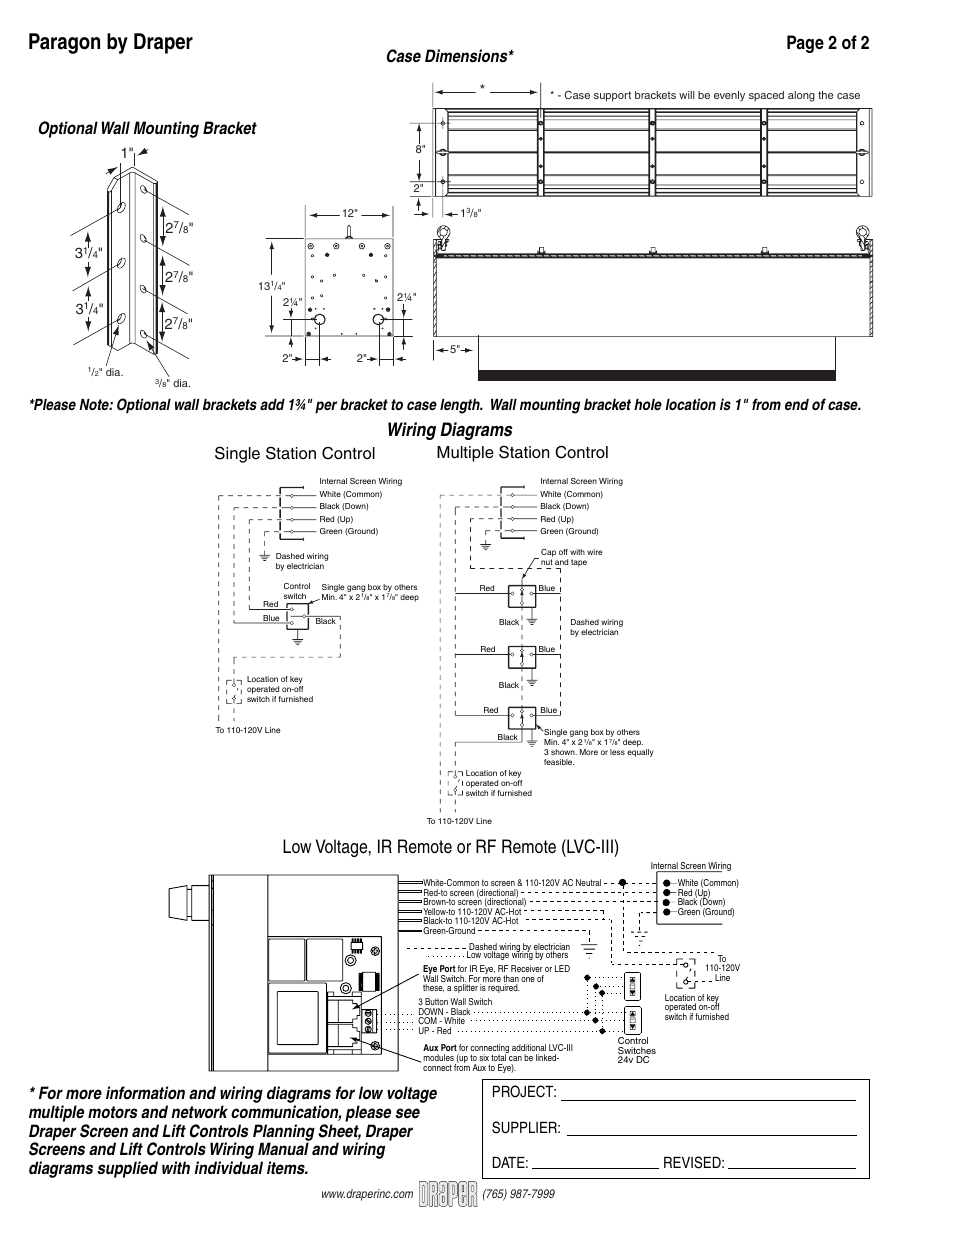 draper paragon large electrically operated projection screen page2 paragon by draper, page 2 of 2, wiring diagrams draper paragon Projector Wiring Setup at mifinder.co